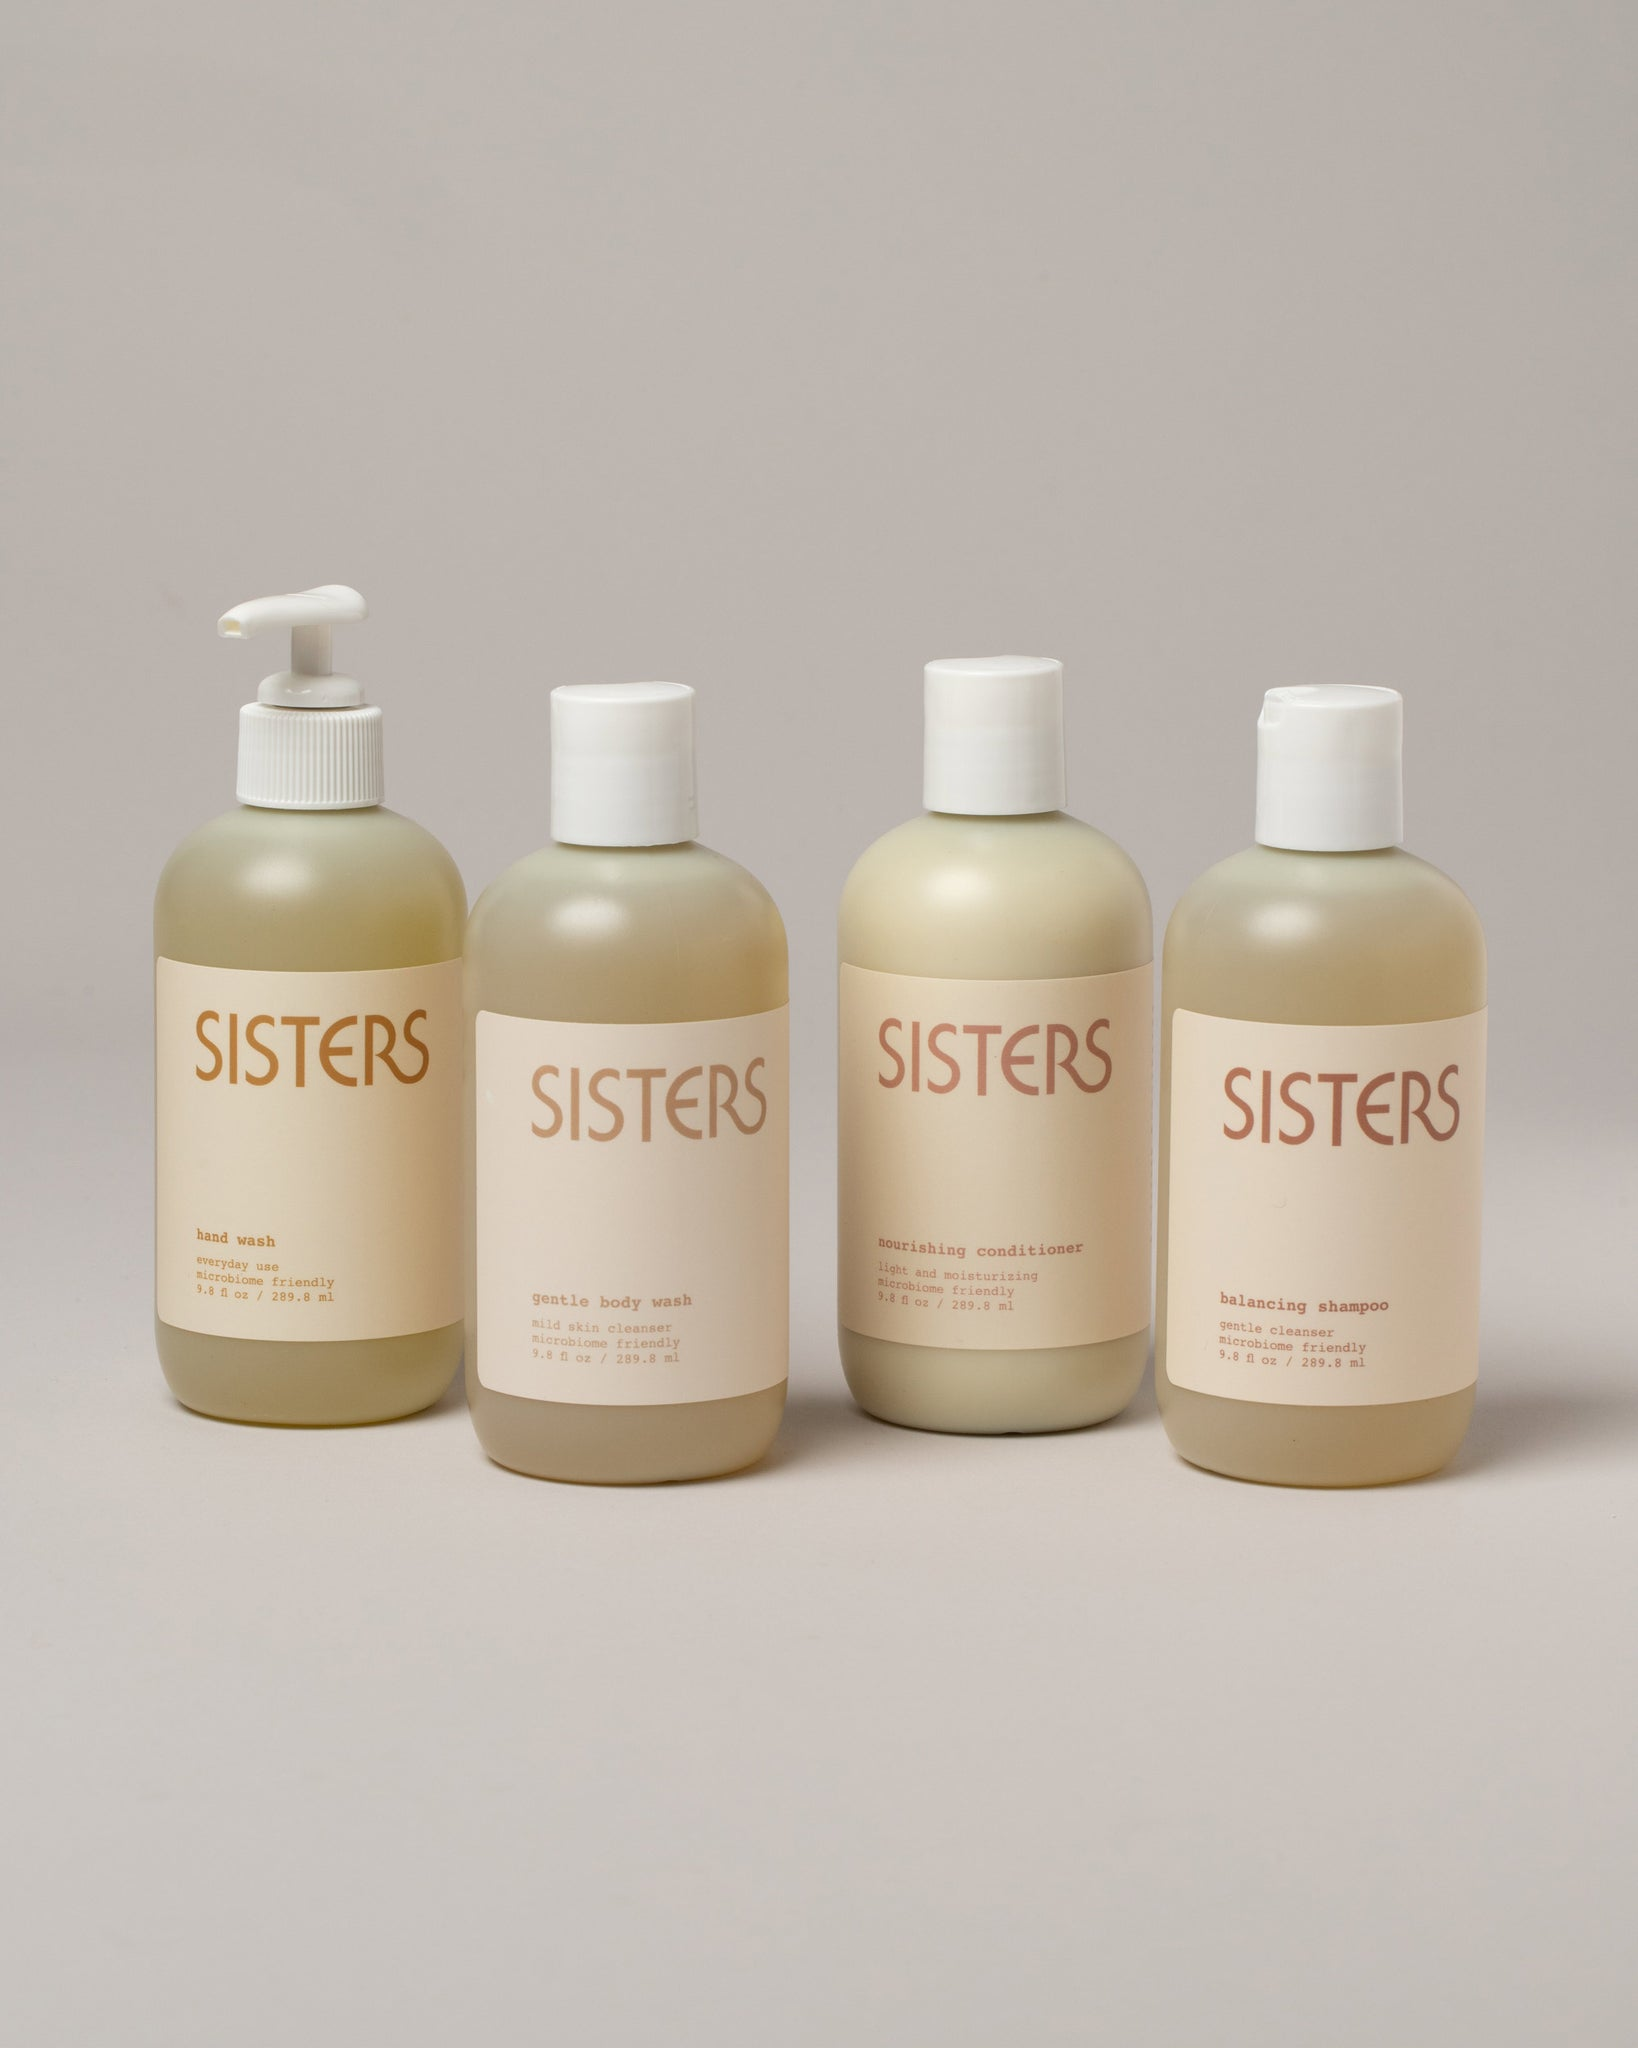 Sisters Body Nourishing Conditioner